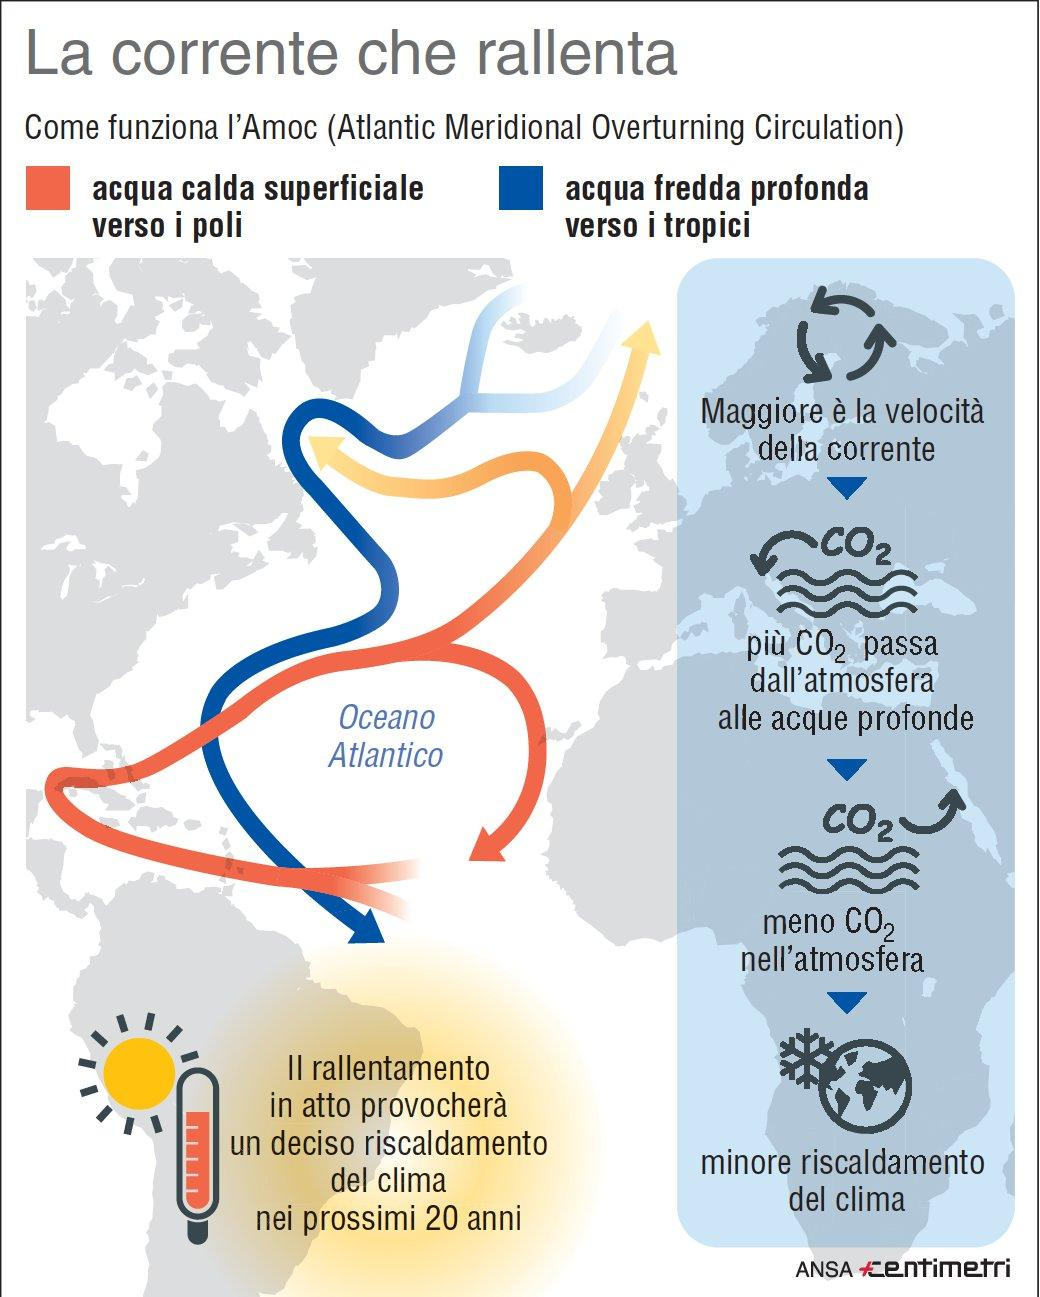 Clima, che cos è l Amoc (Atlantic Meridional Overturning Circulation)